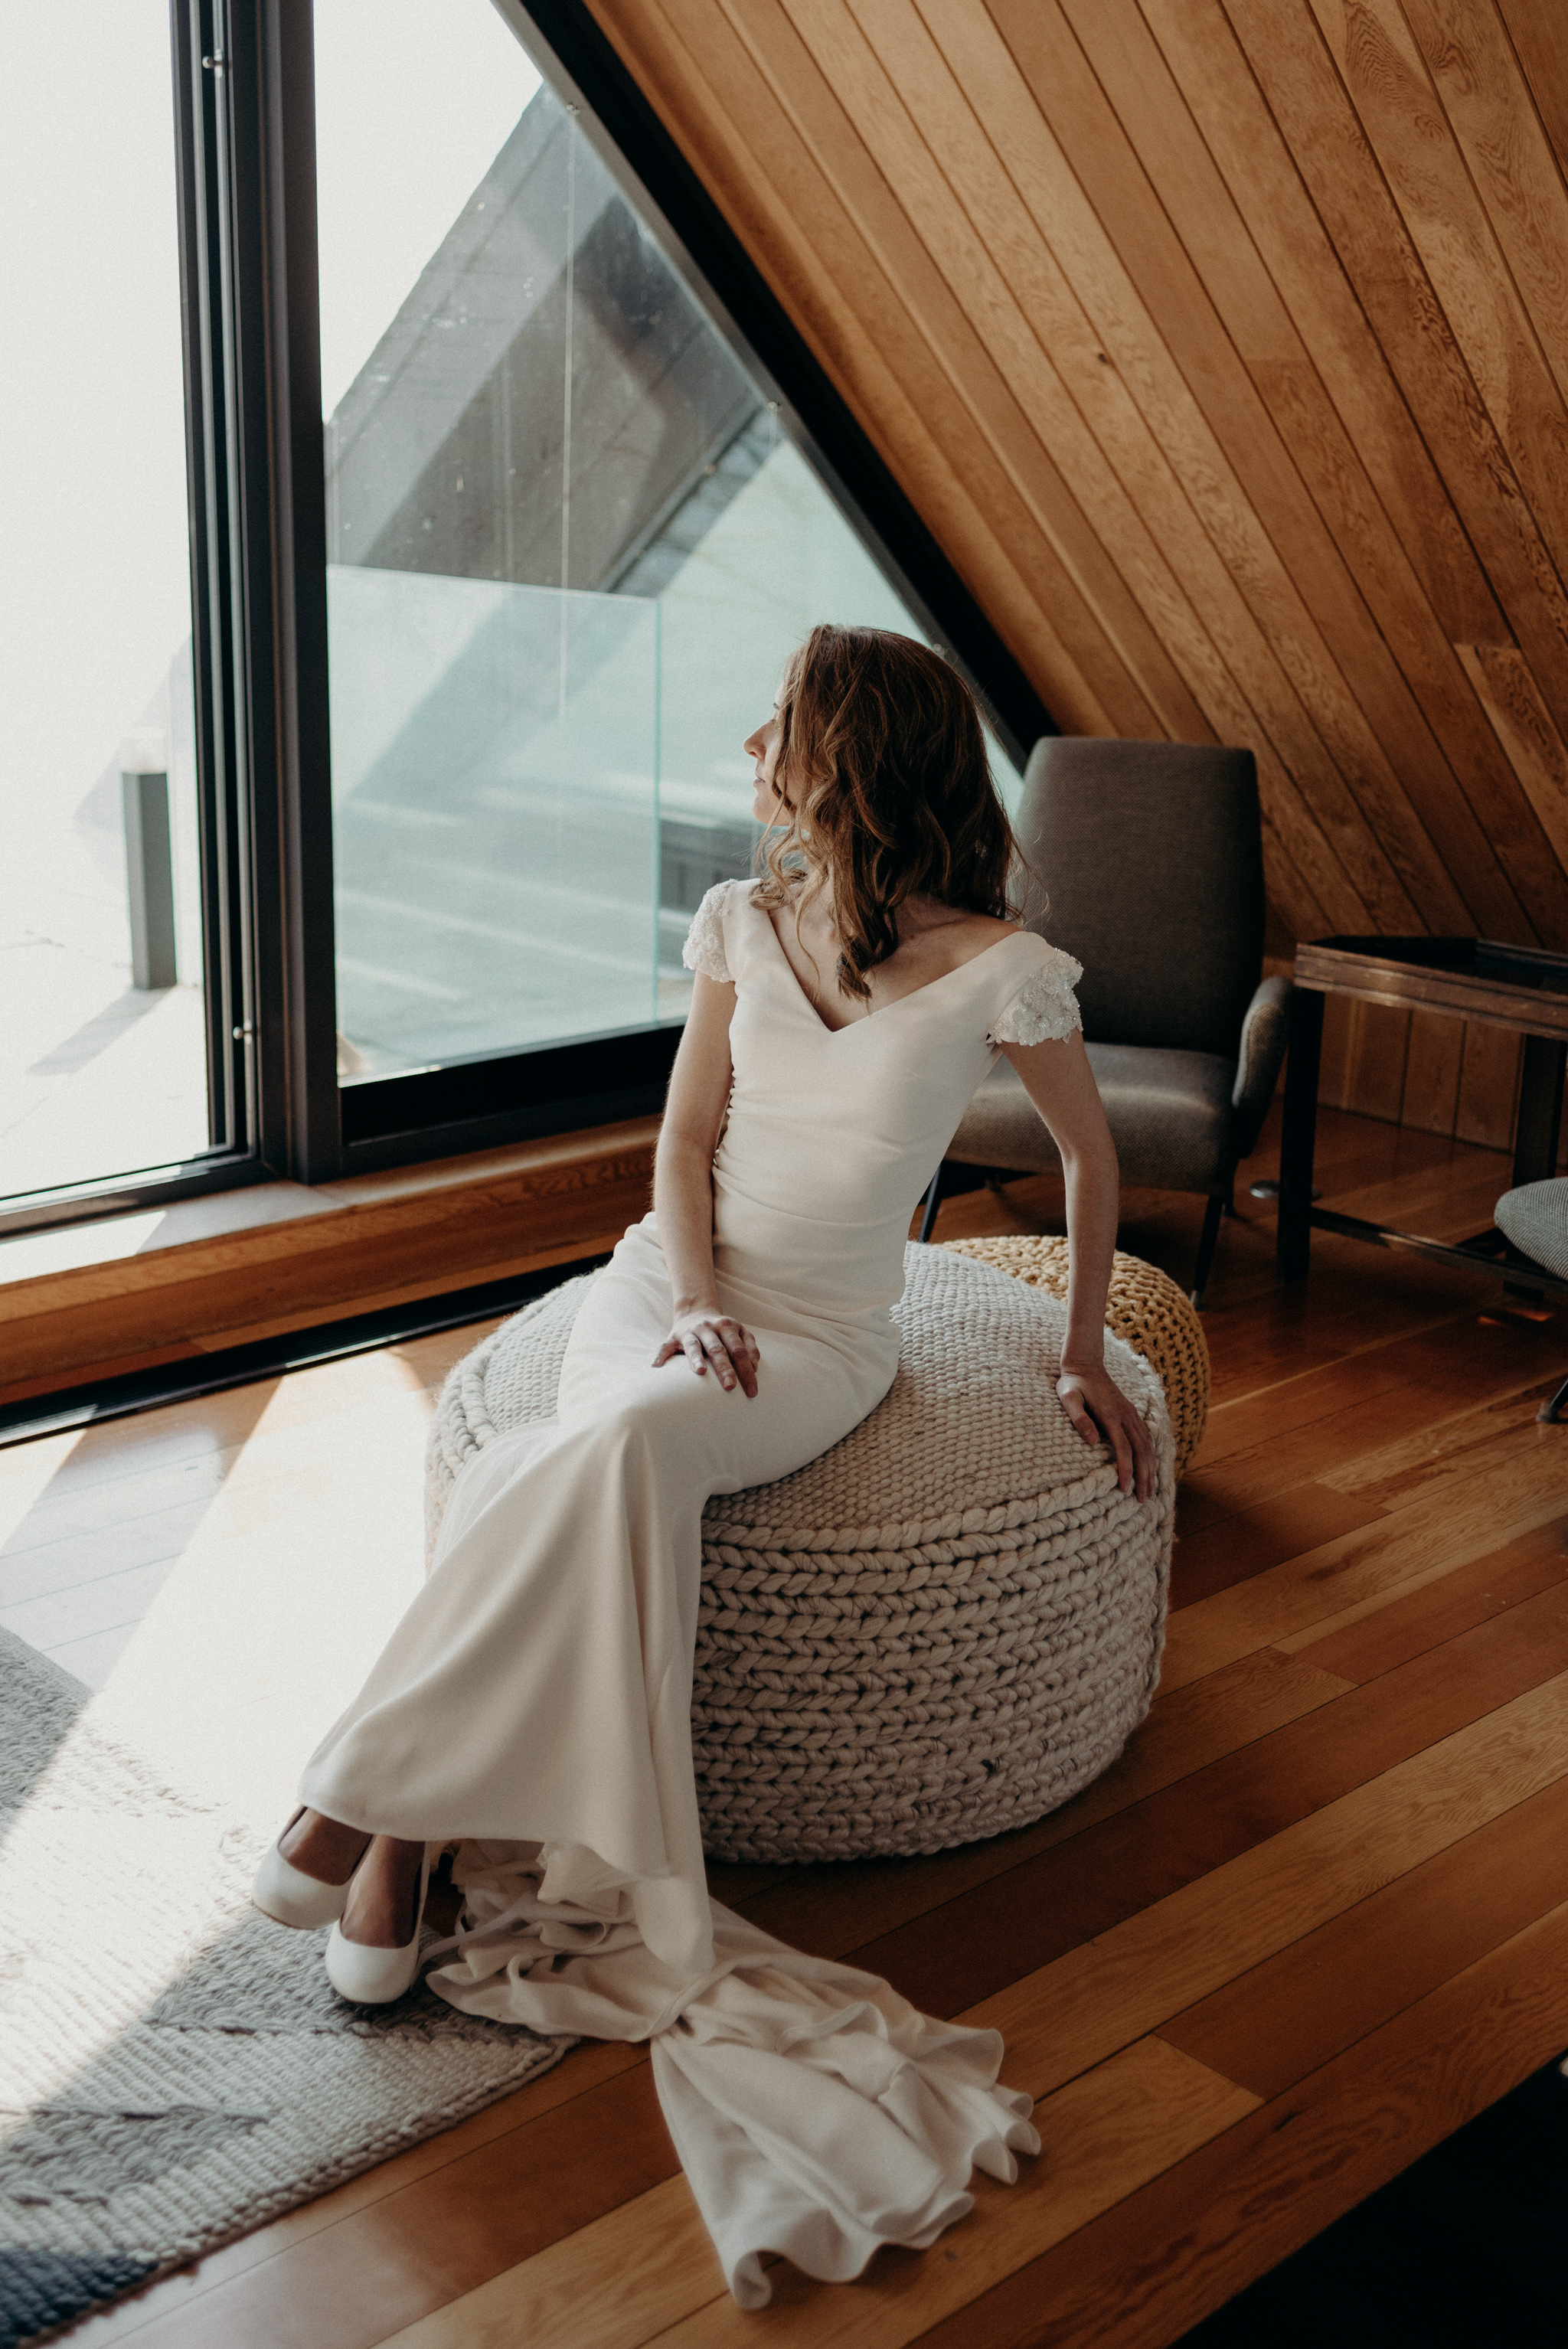 Bride sitting on pouf looking out window